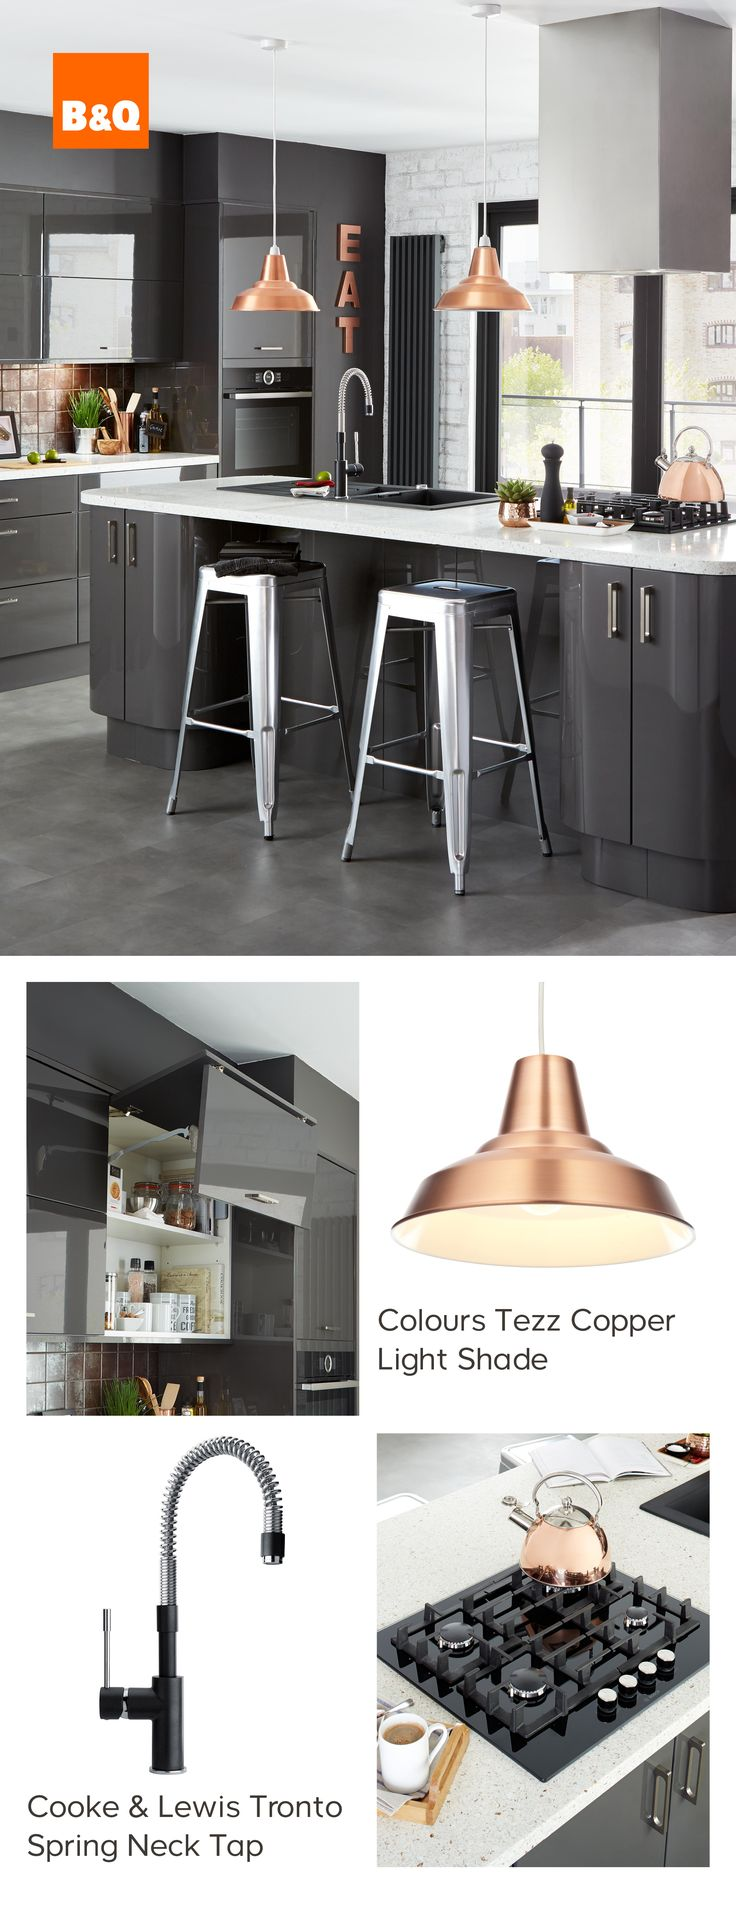 Did you know brass is the new copper? This contemporary Raffello High Gloss Anthracite kitchen is just begging you to accessorise with brass to maximise its urban styling and metallic accents.